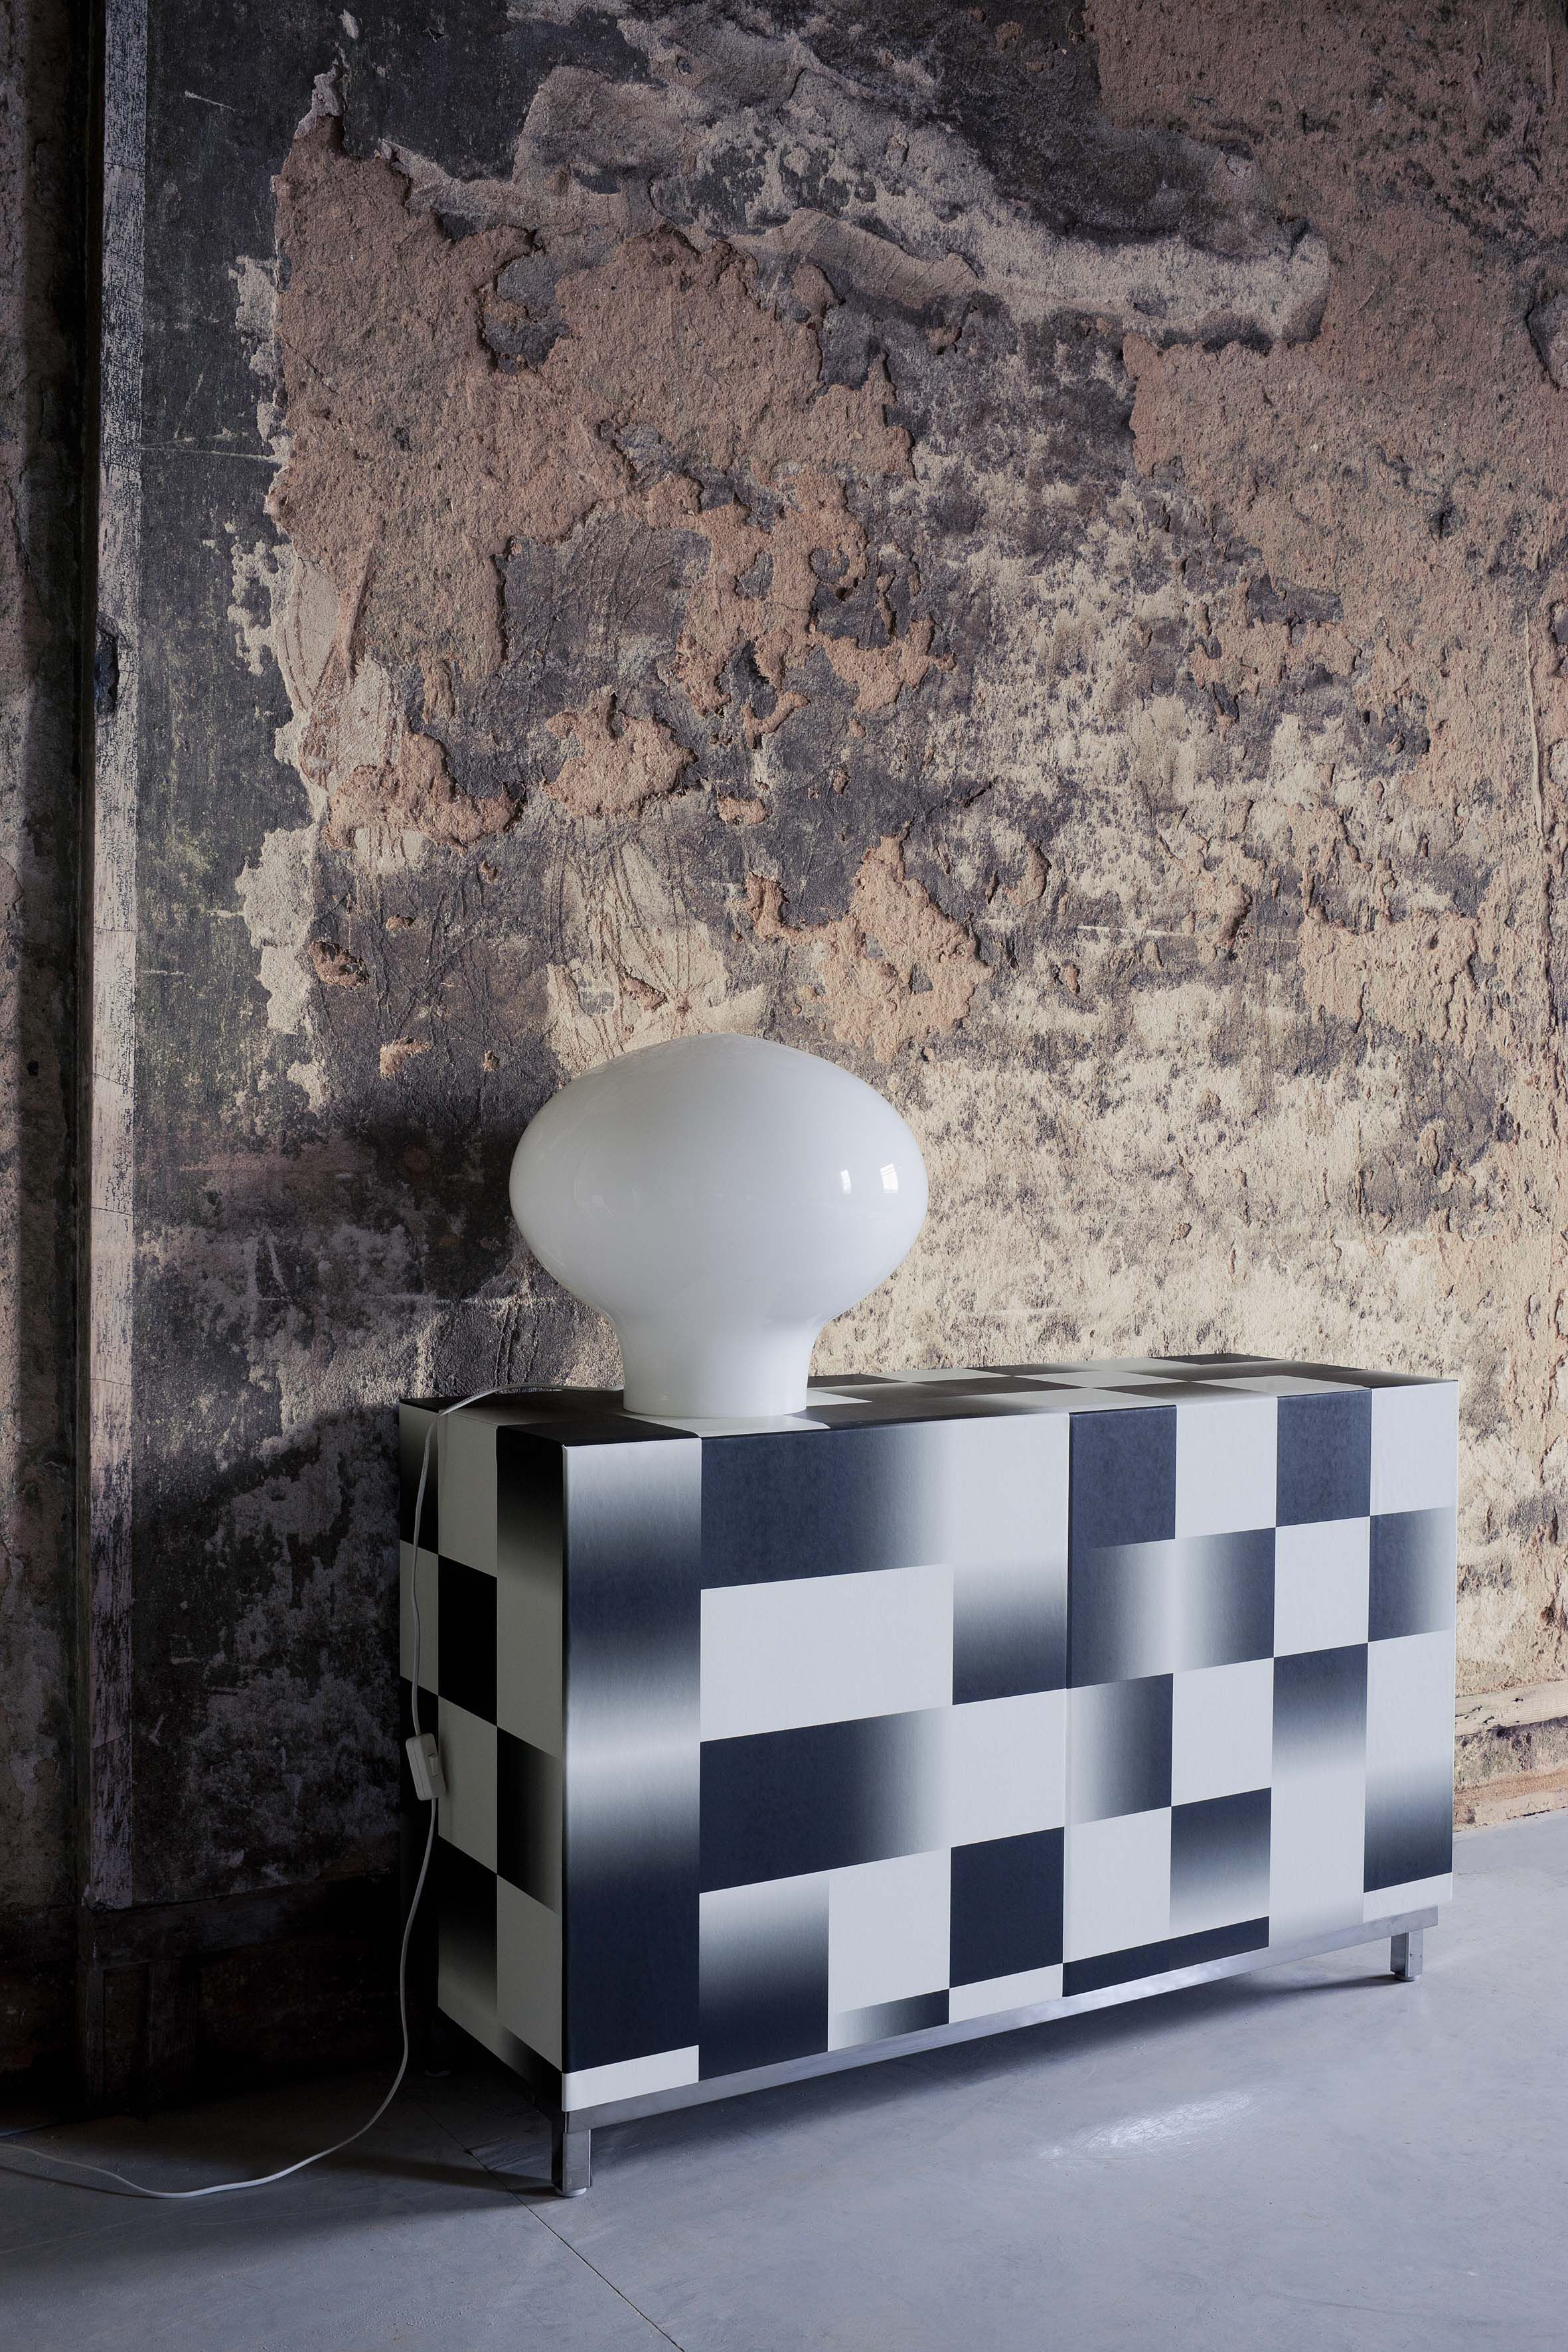 The Geometric collection was designed to reflect the trend for modern living. With the use of clean edges, clever repeats and trompe l'oeil effects, Geometric revives the mood of the 60's with its 'Op Art' geometry and explorations of colour, line, movement and illusion.  Wallcovering from Cole & Son, Geometric